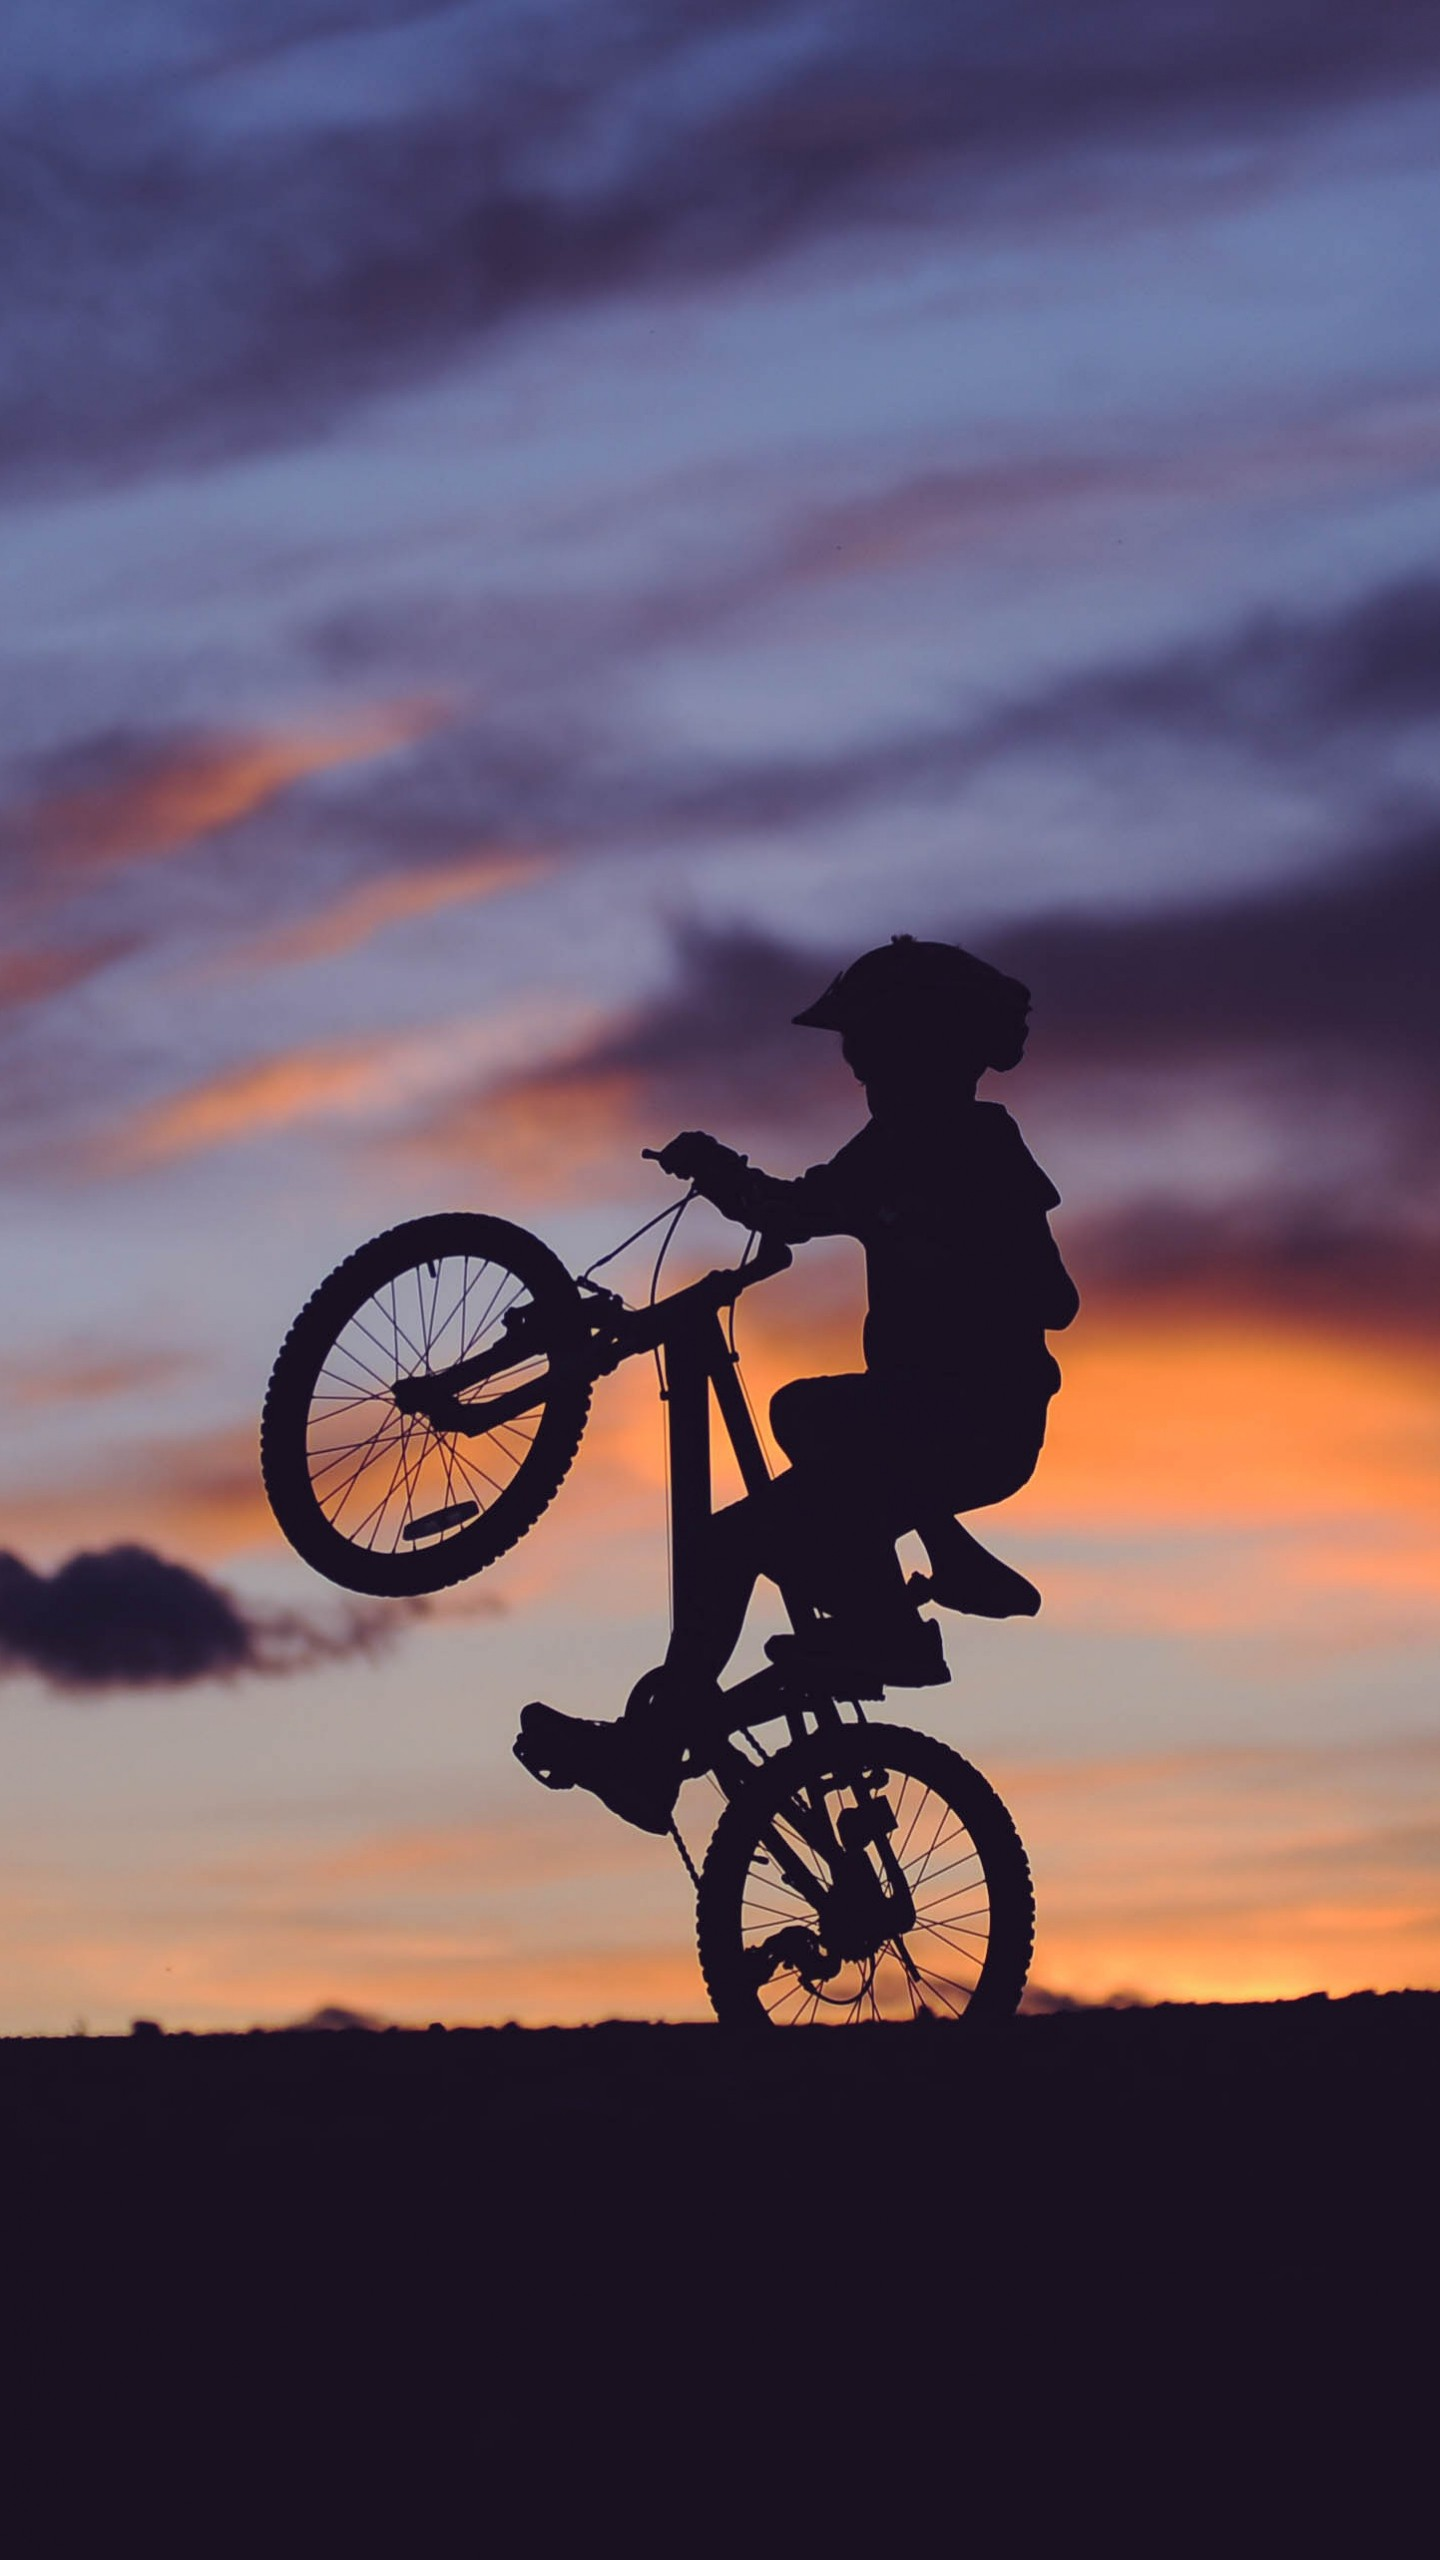 Cyclist Silhouette Sunset Wallpaper - [1440x2560]